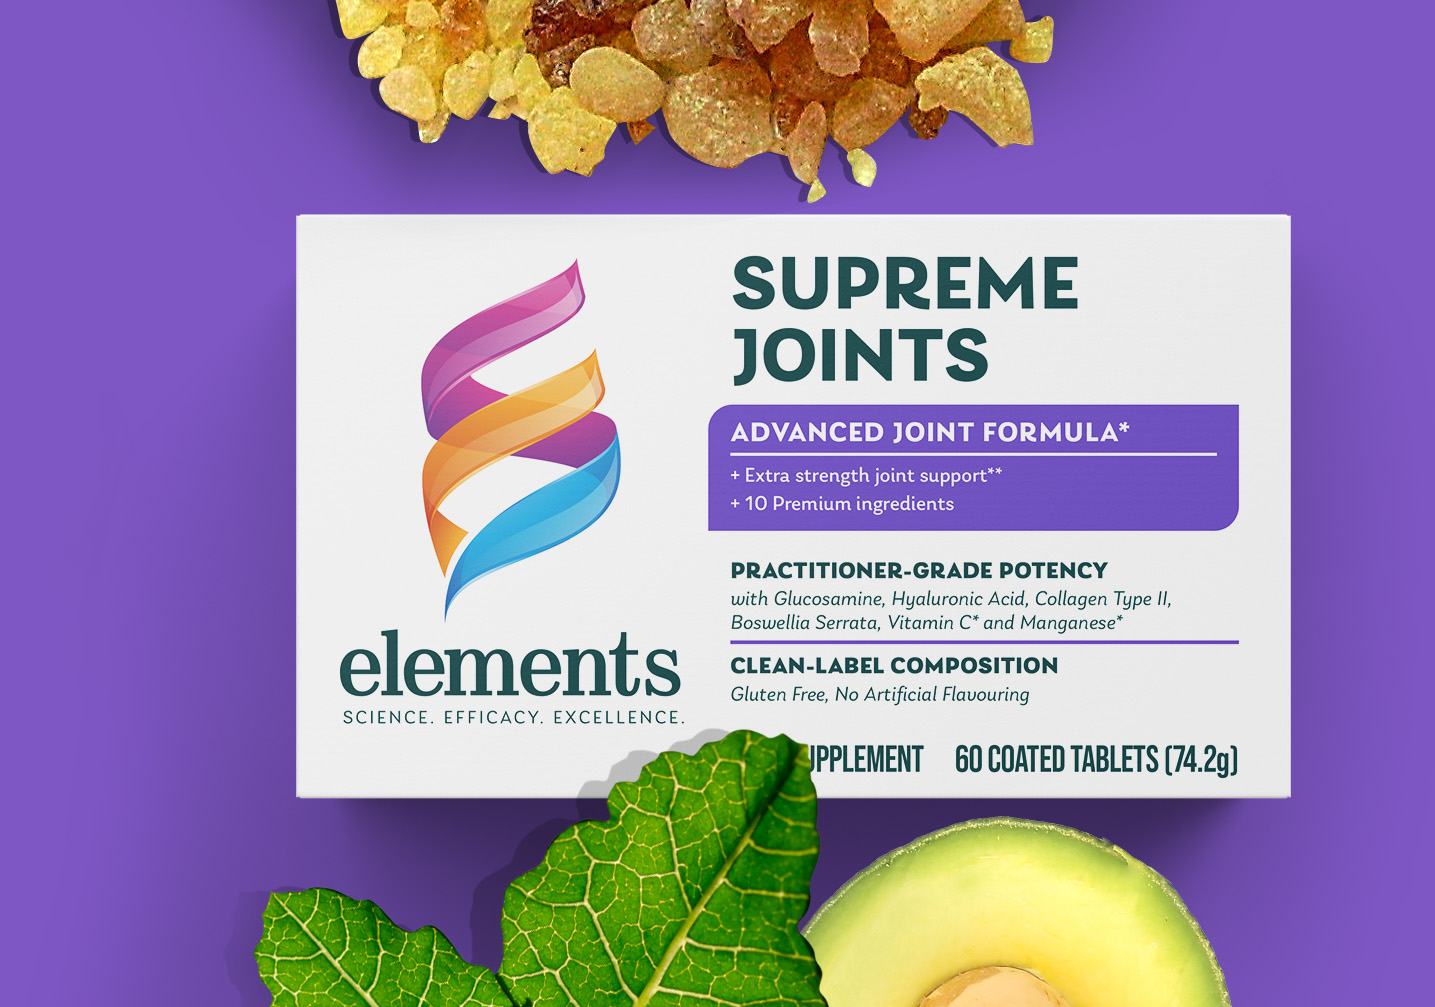 Supreme Joints